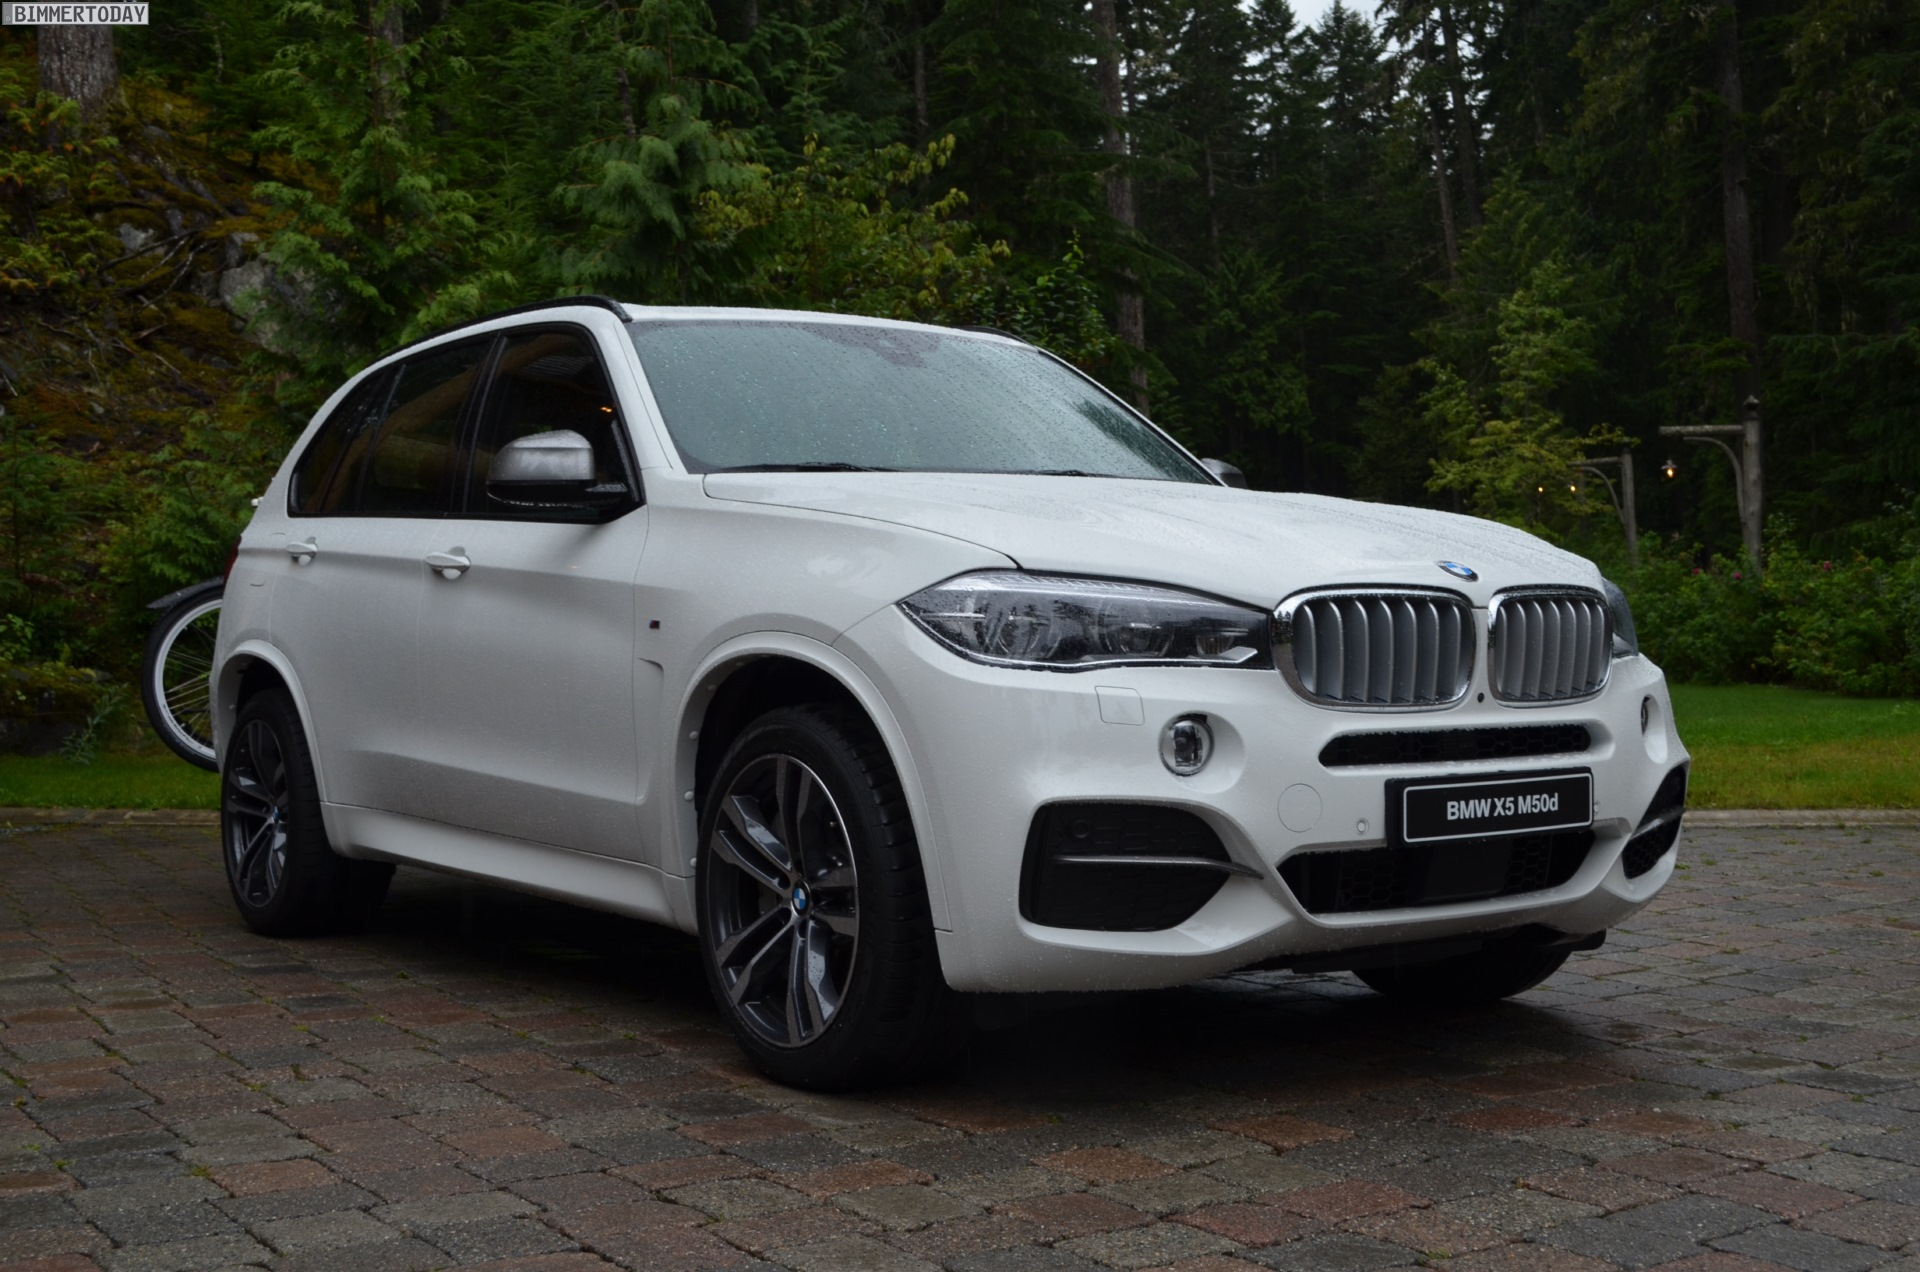 F15 Bmw X5 M50d With M Sport Package Real Life Photos